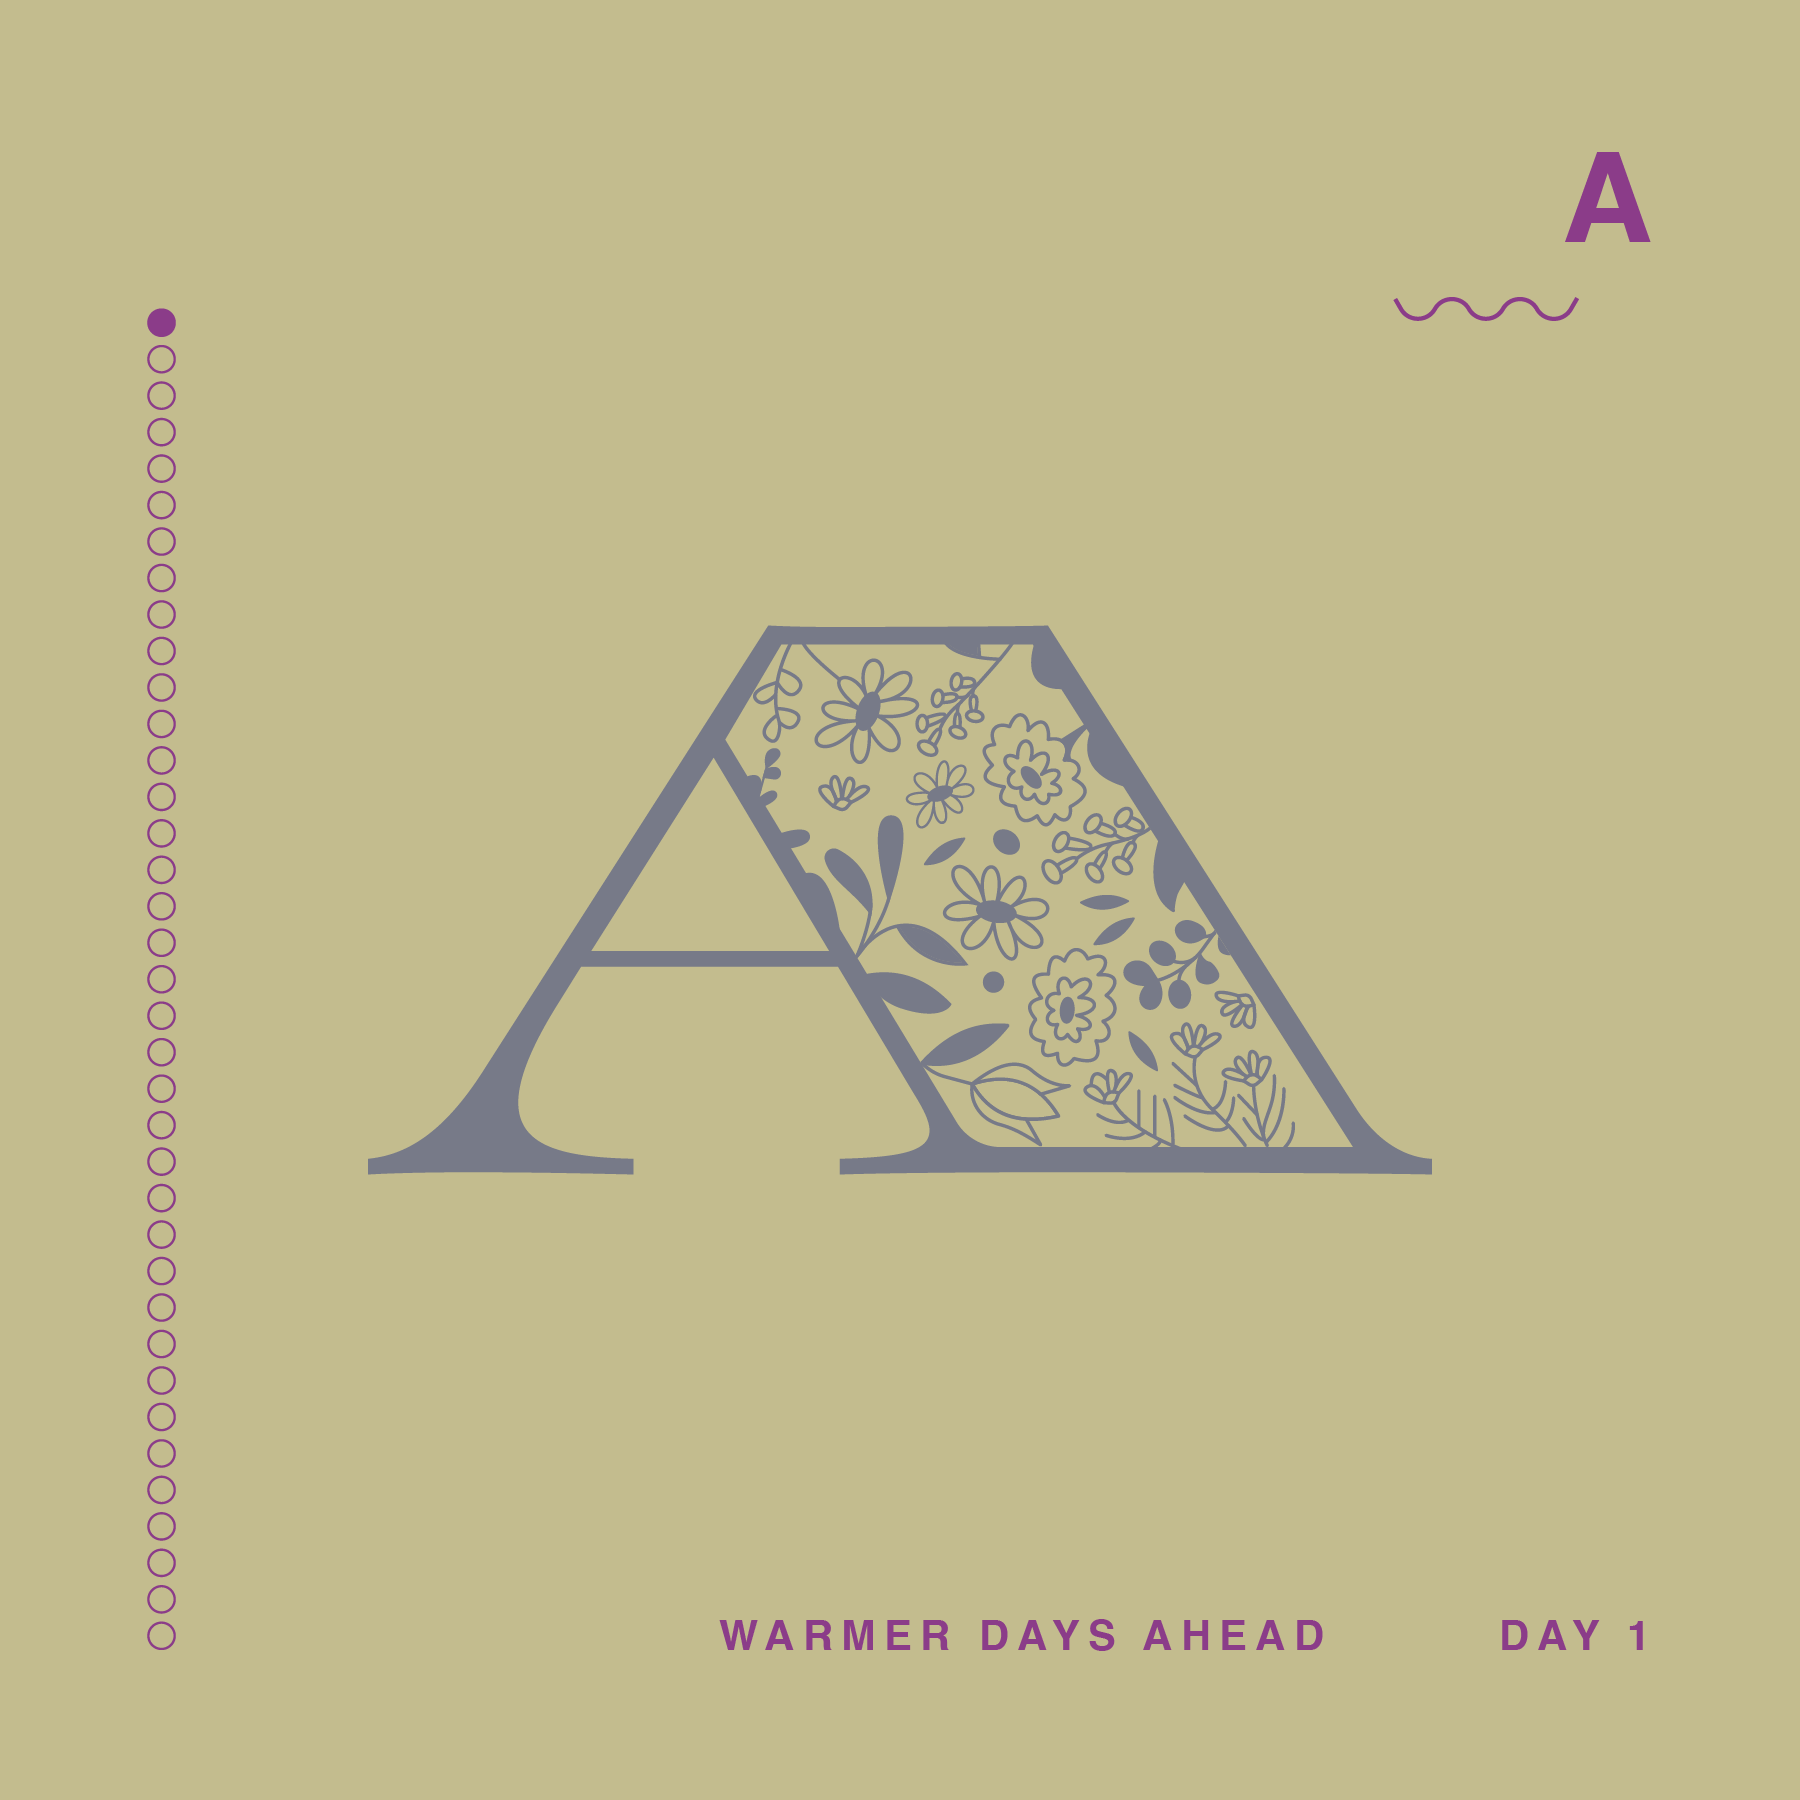 36DaysOfType_A.png